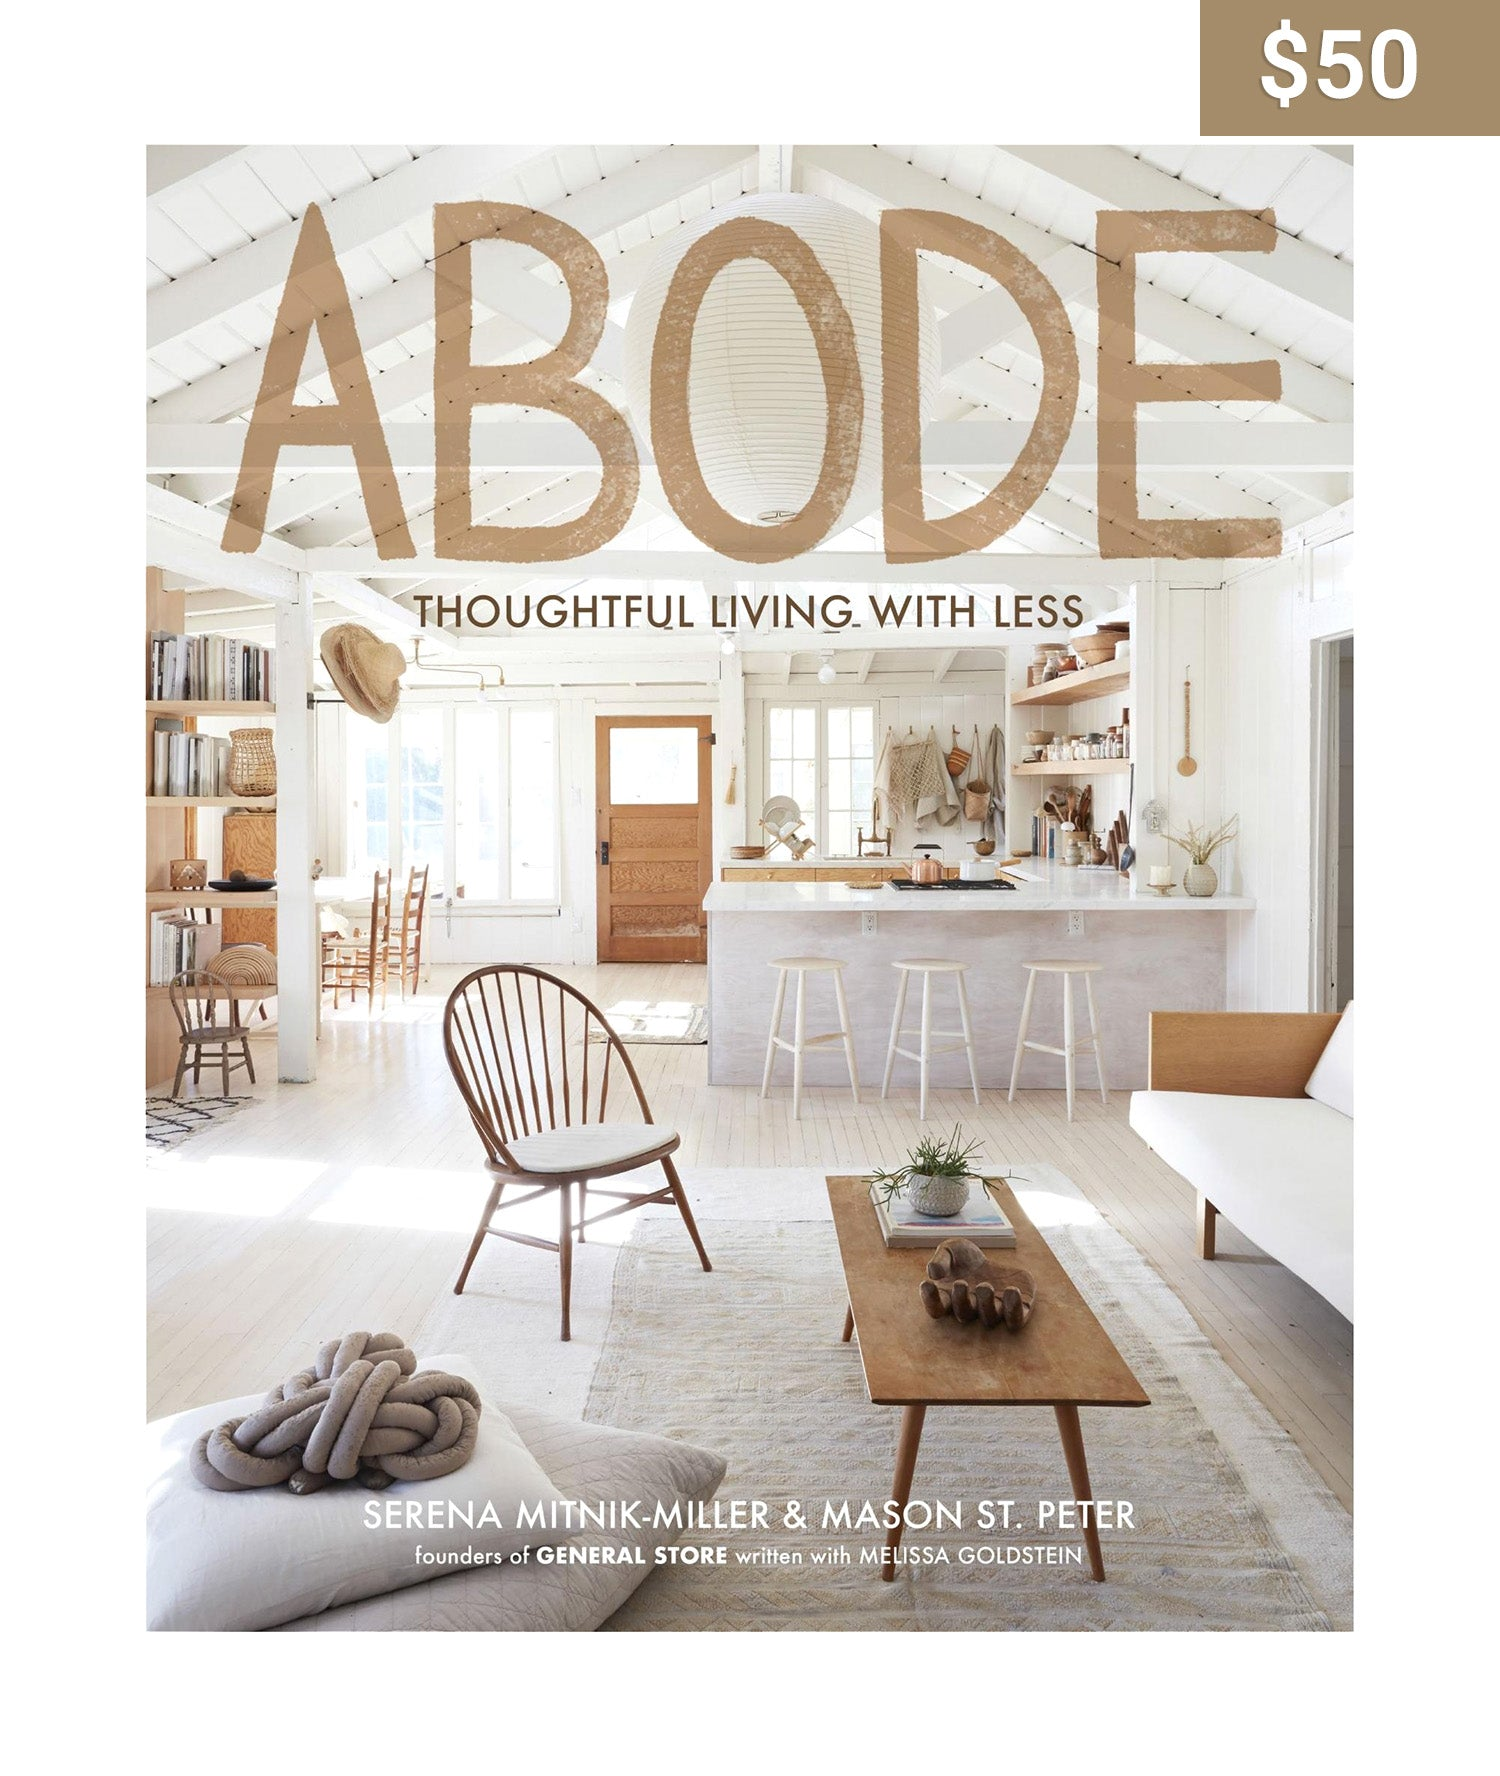 Thoughtful Living with Less Abode